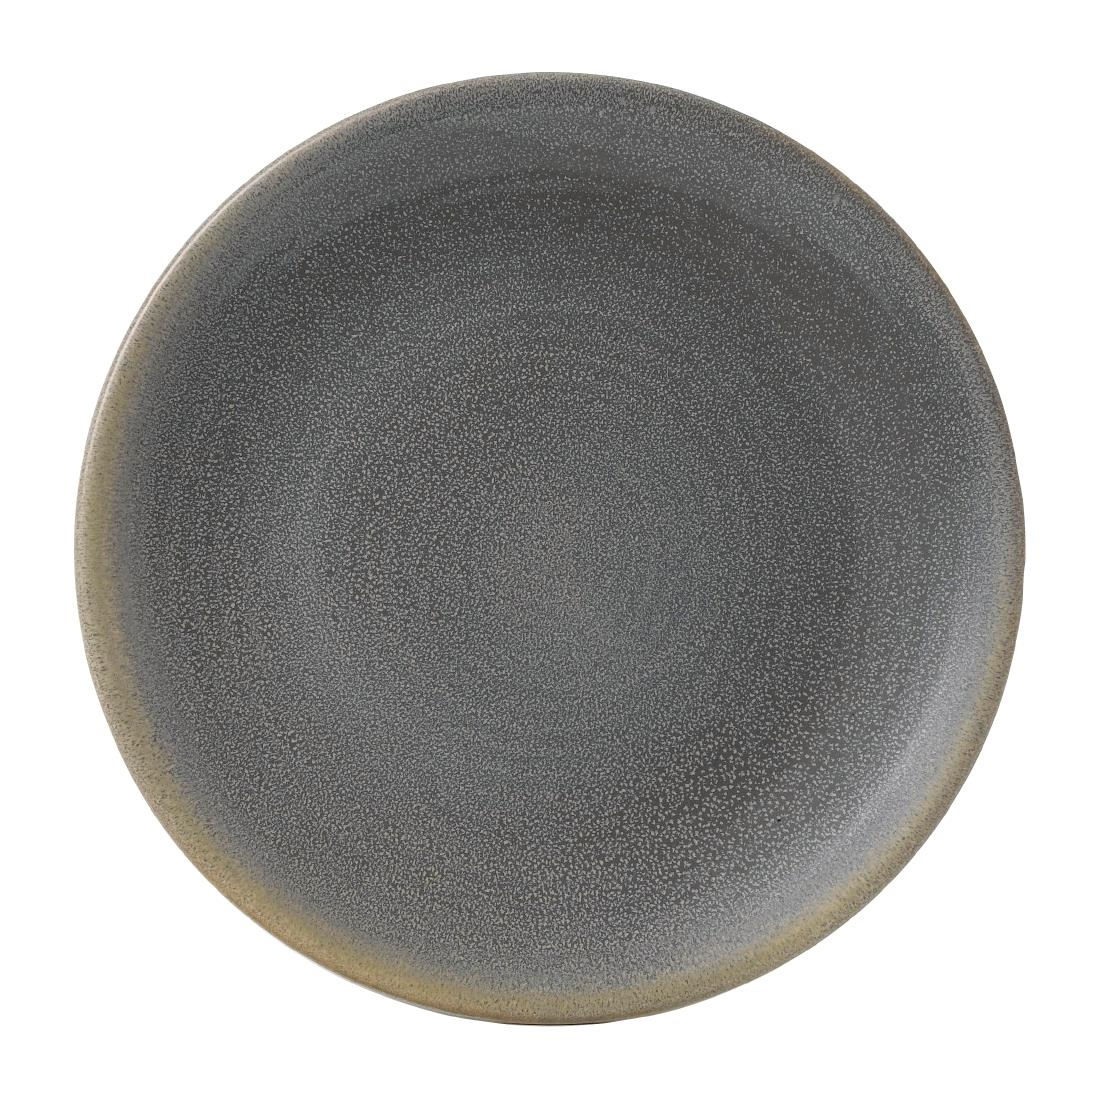 Image of Dudson Evo Granite Coupe Plate 228mm (Pack of 6) Pack of 6